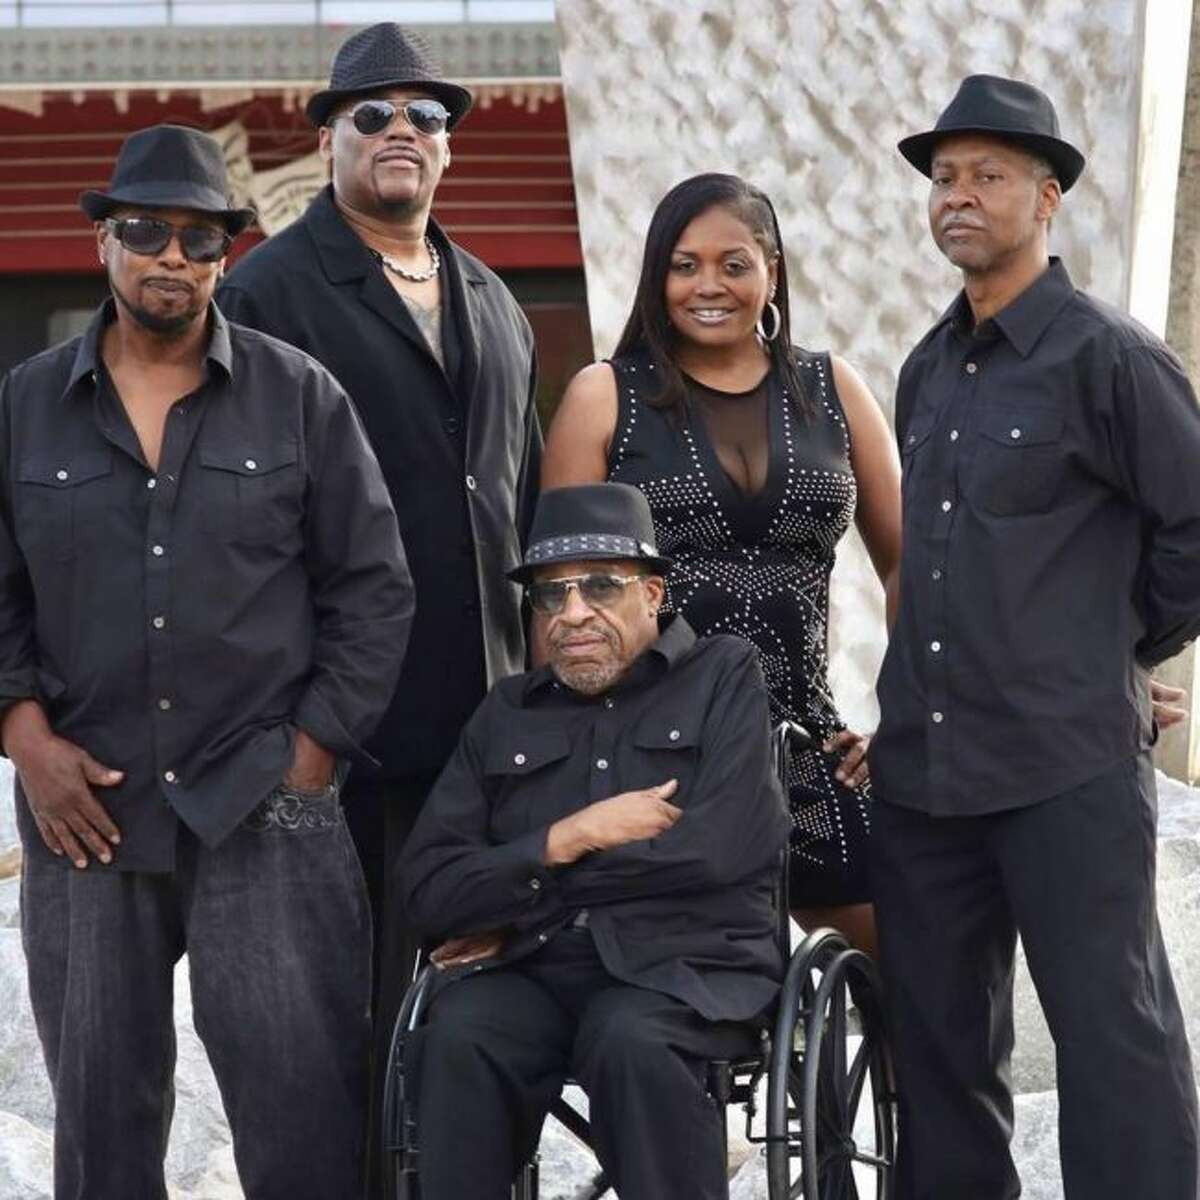 The Ultimate Taste Band will play in Manistee for the Shoreline Showcase. (Courtesy Photo)